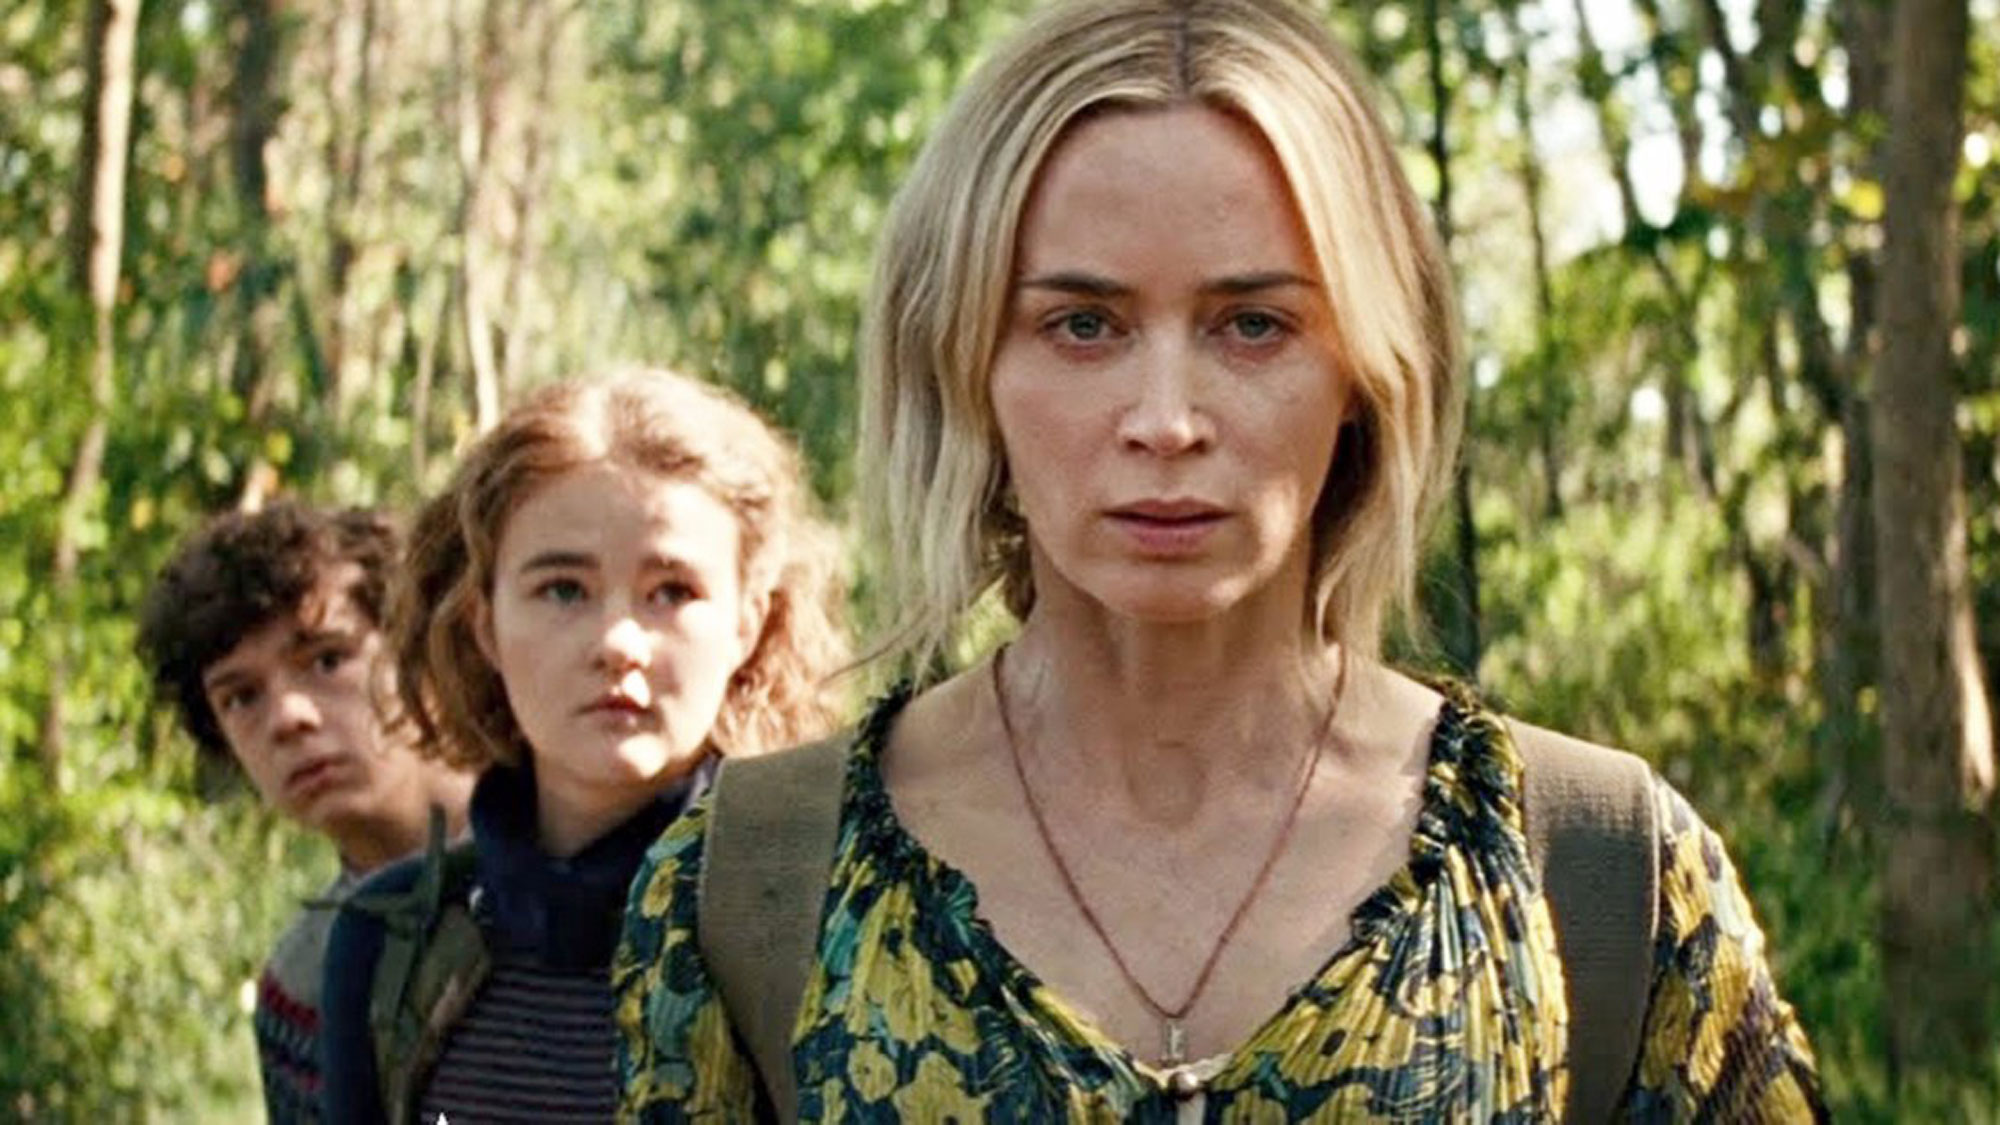 A Quiet Place 3: Release date